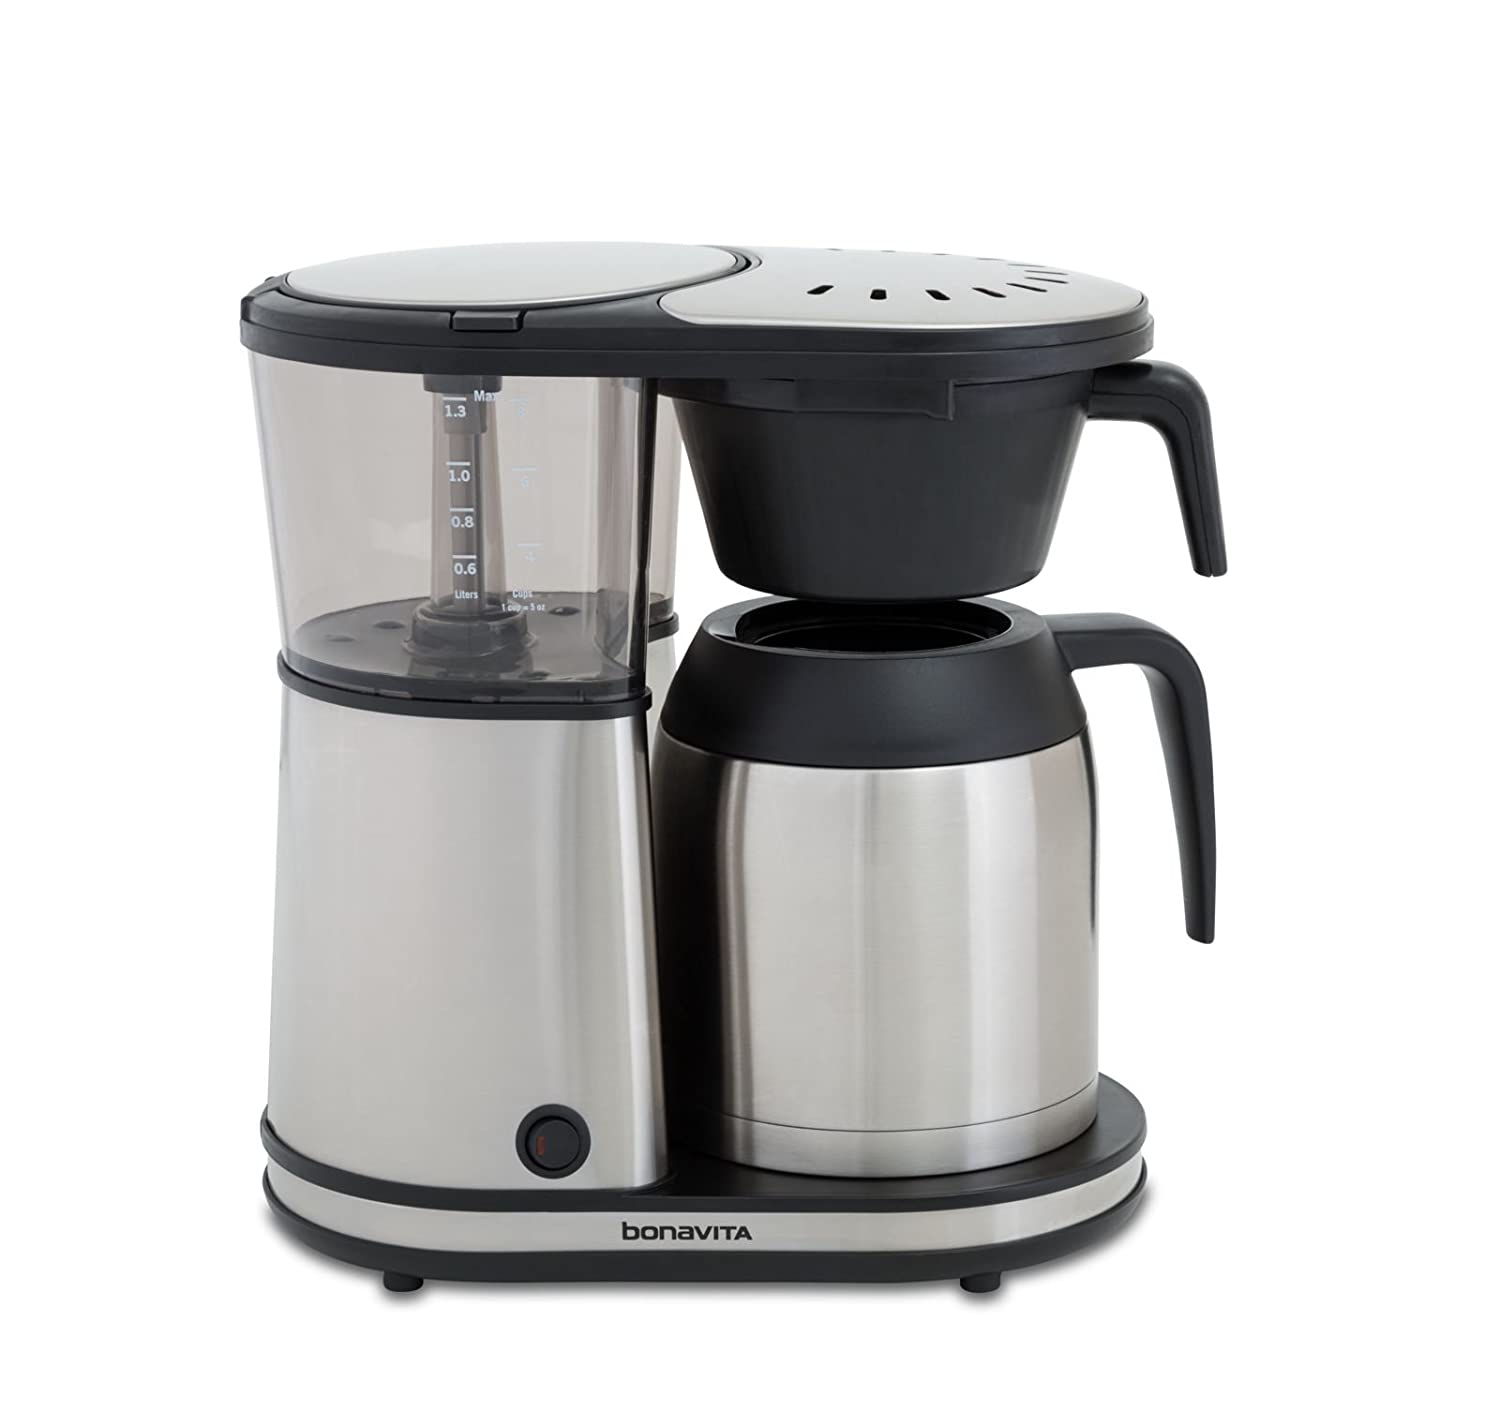 Bonavita BV1901TS Connoisseur 8-Cup One-Touch Coffee Maker Featuring Hanging Filter Basket and Thermal Carafe